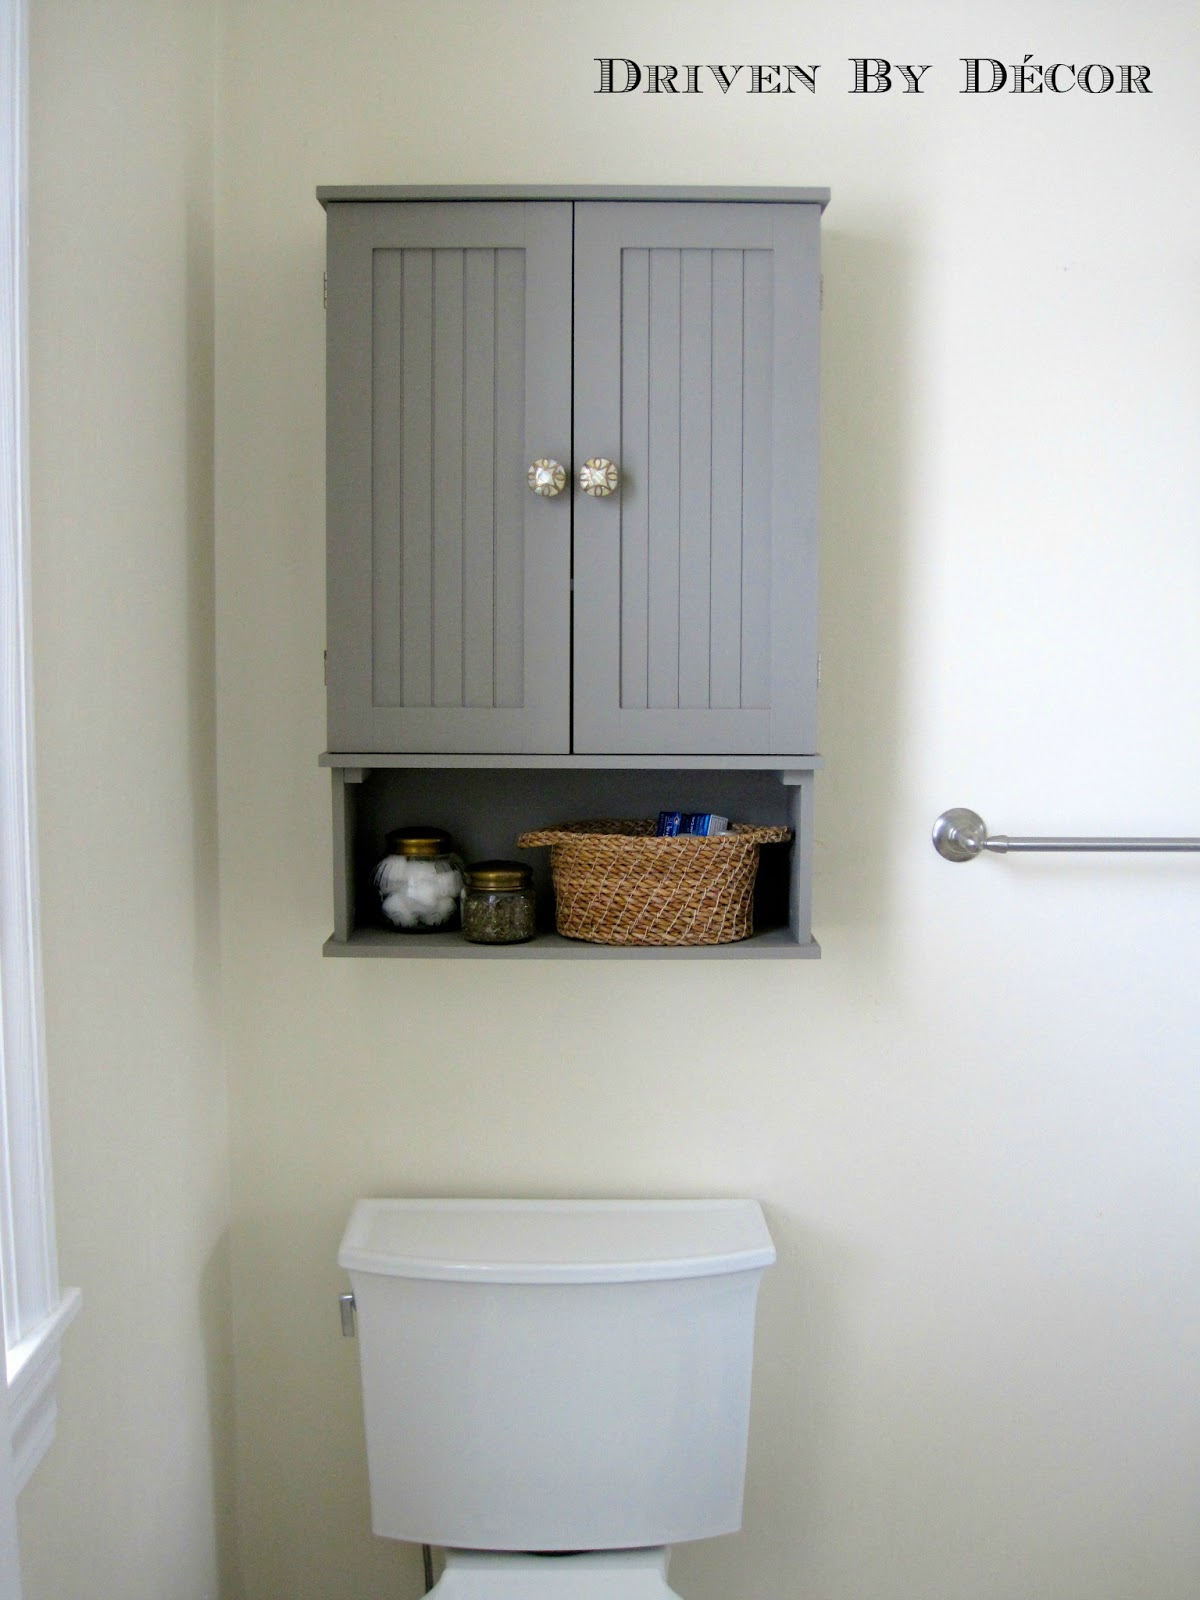 annie sloan chalk paint bathroom cabinet makeover - Painted Bathroom Cabinets Before And After